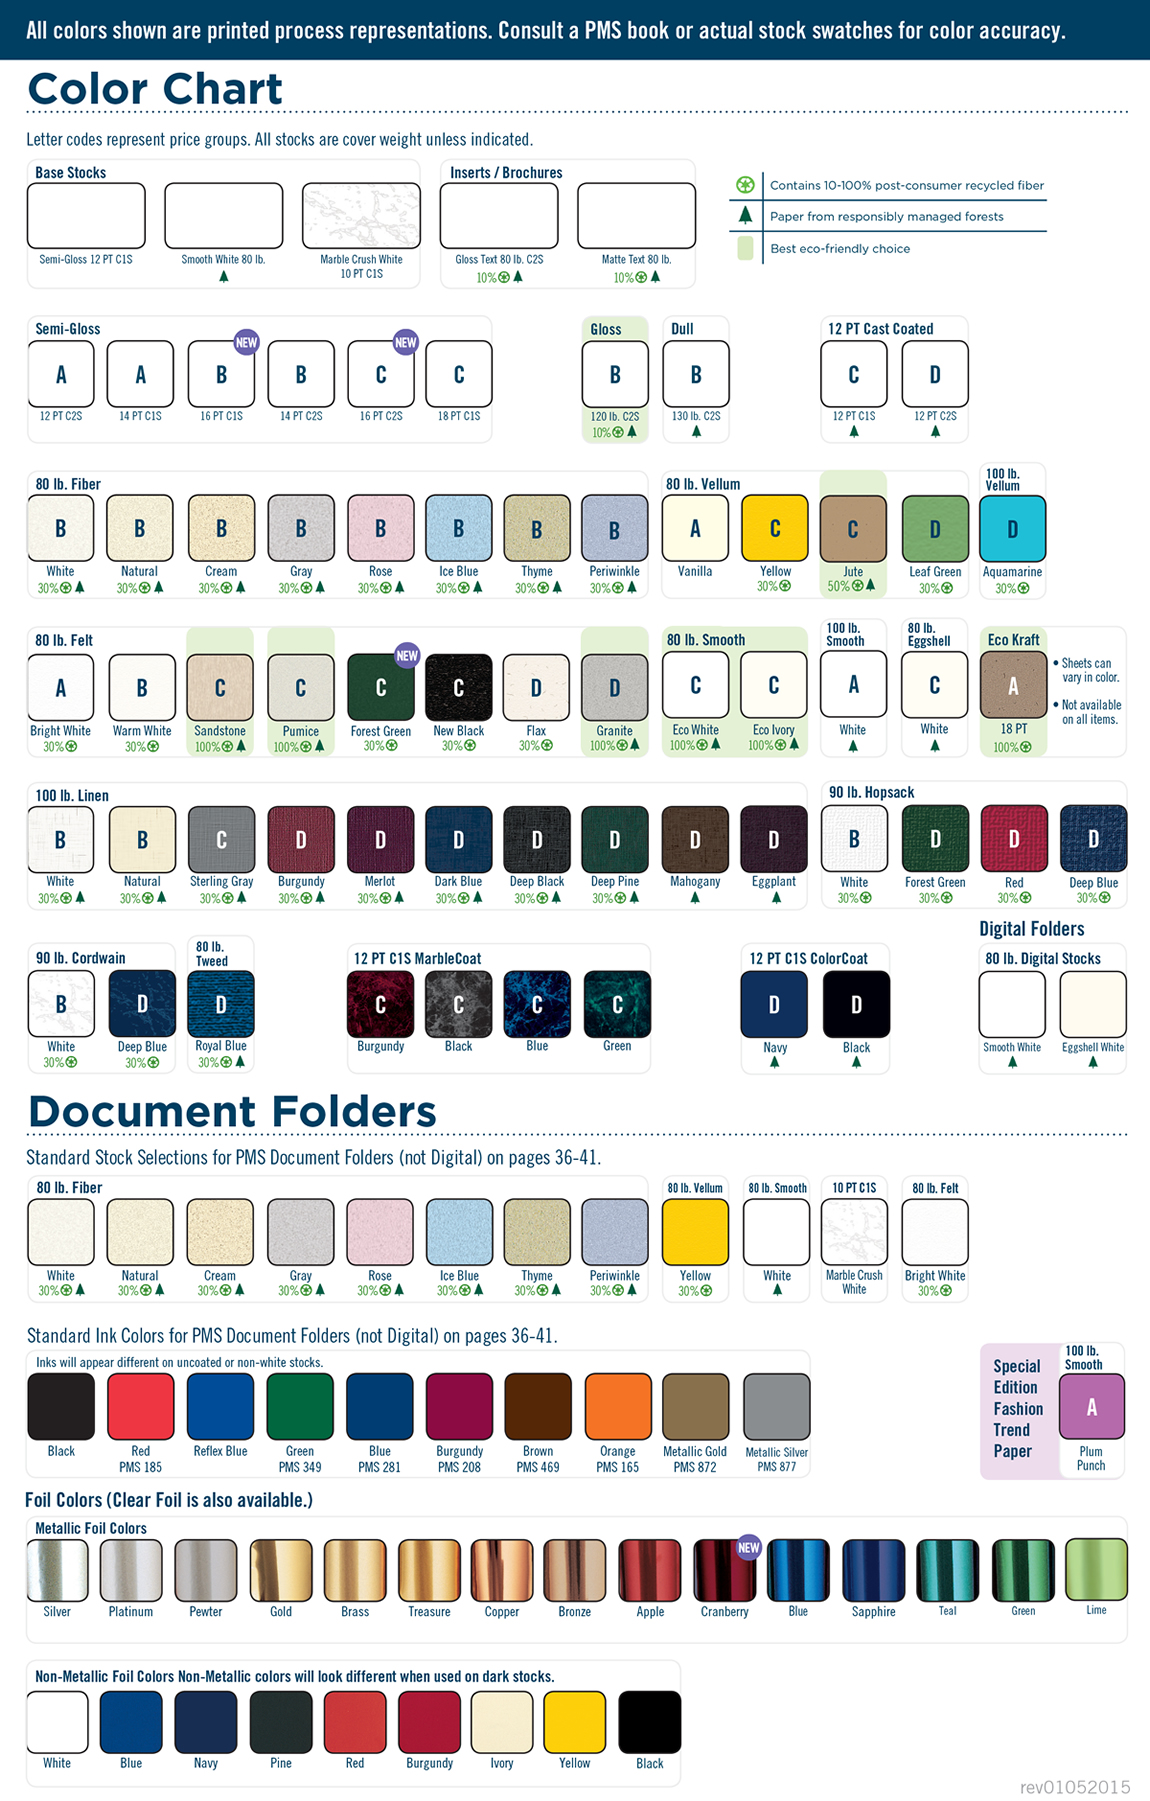 Stock, Ink & Foil Color Chart